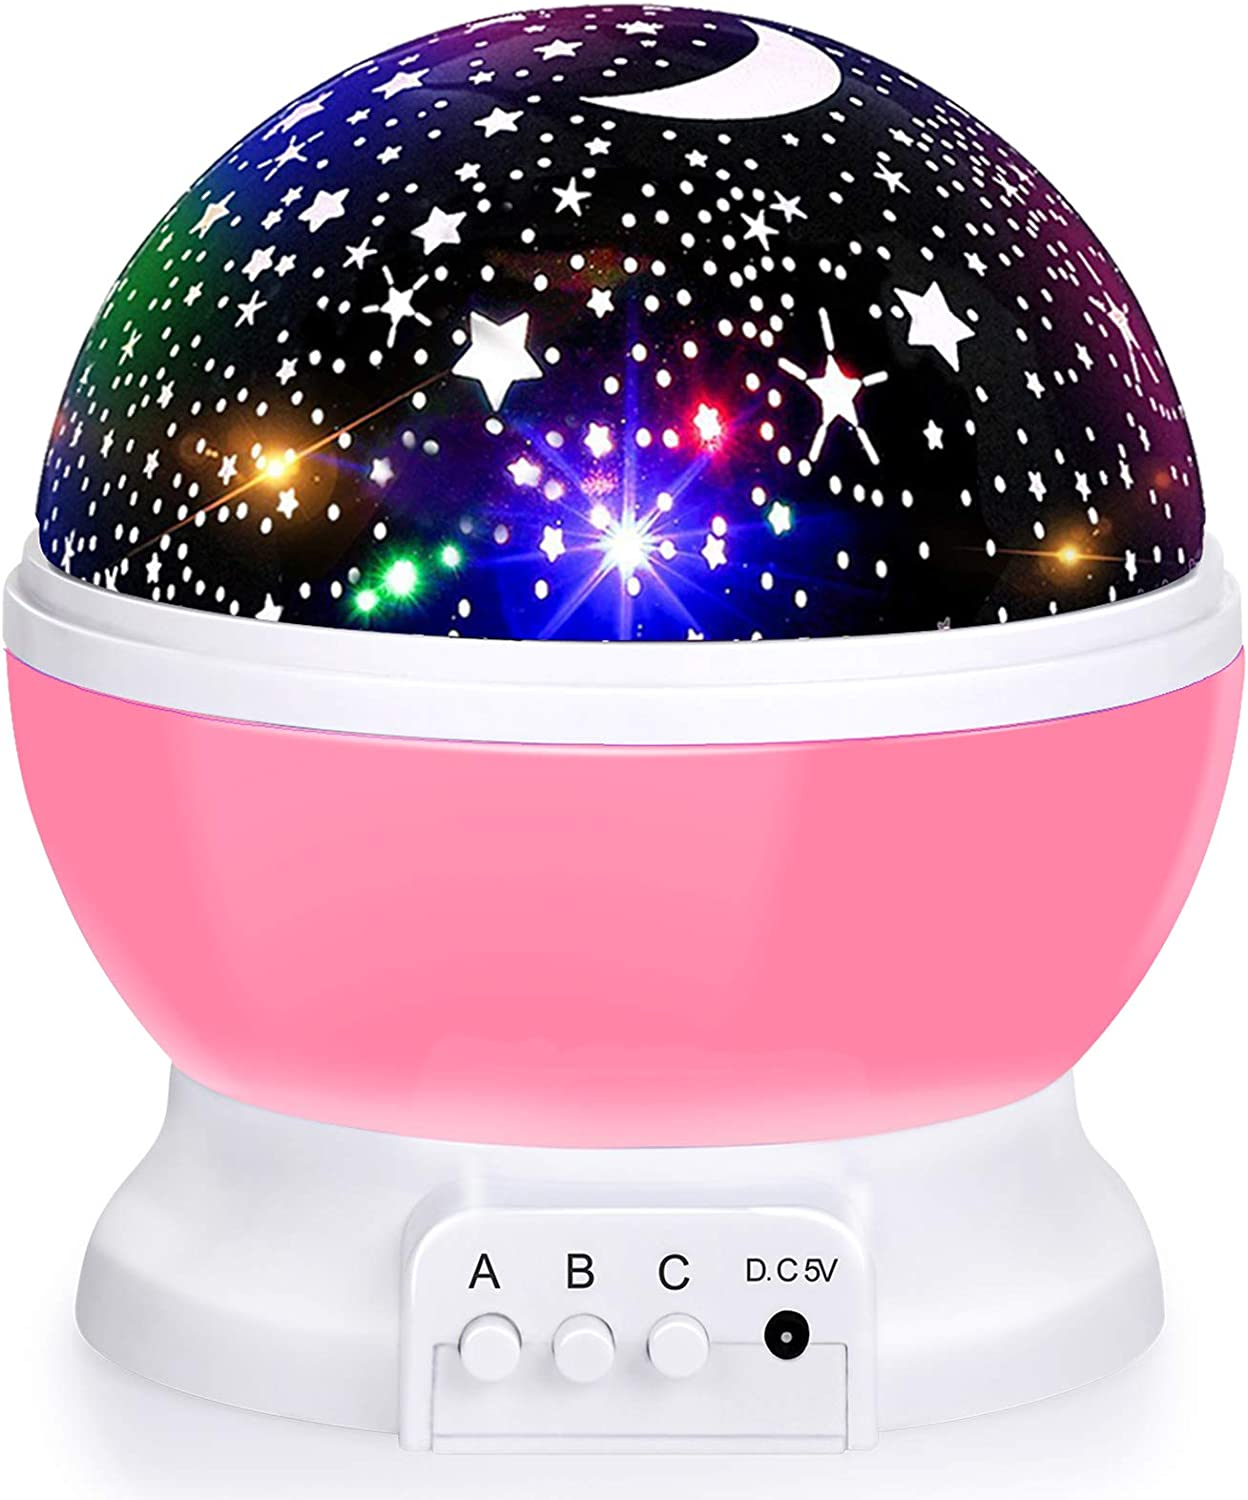 4 LED Bulbs 9 Light Color Changing With USB Cable Baby Night Light Moon Star Projector 360 Degree Rotation Unique...\u00a0